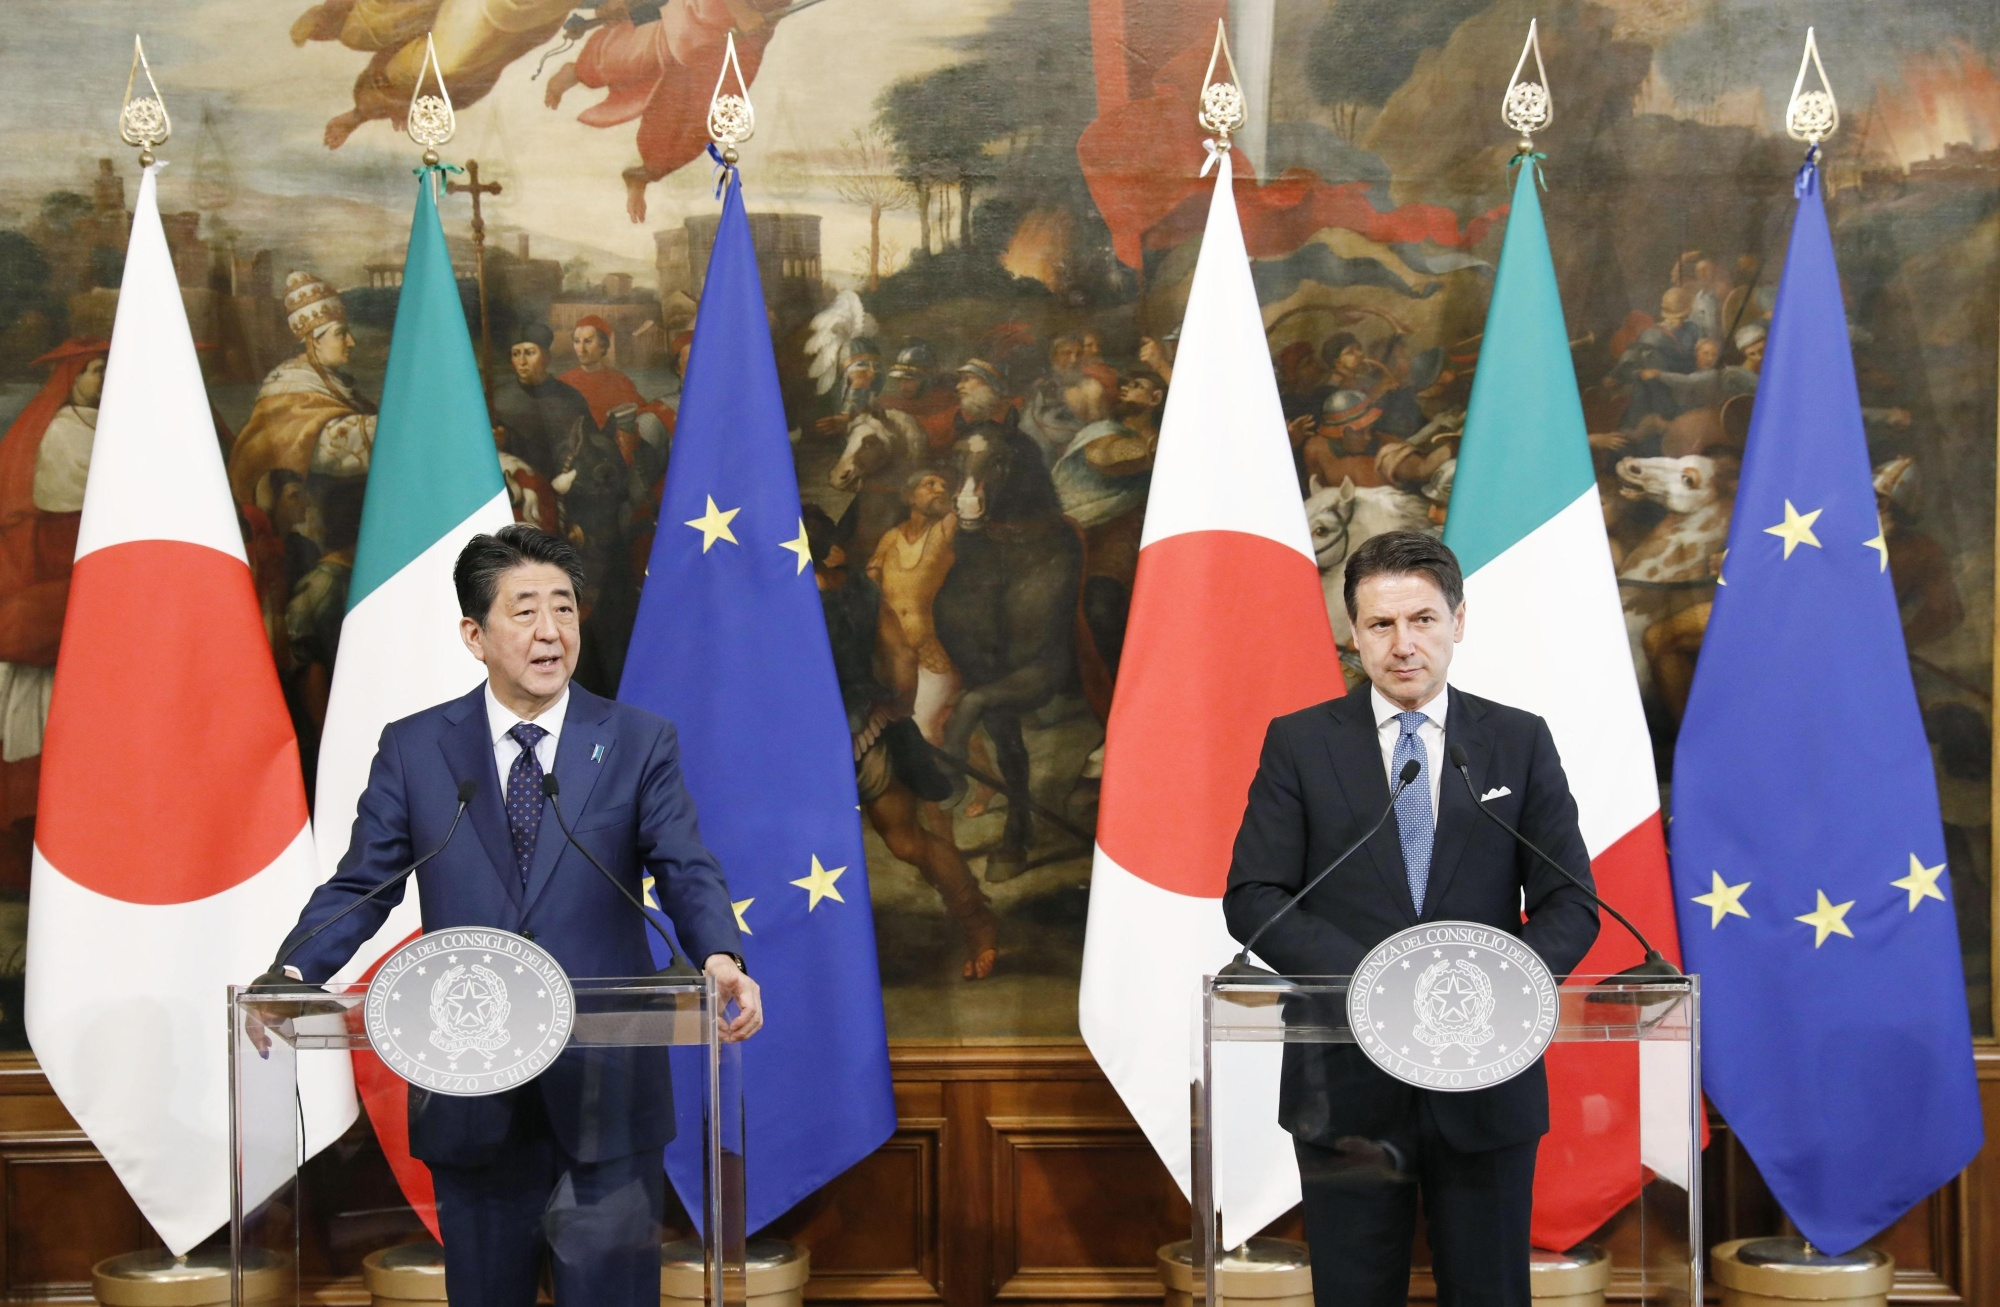 Prime Minister Shinzo Abe and Italian Prime Minister Giuseppe Conte hold a joint news conference in Rome on Wednesday. | KYODO